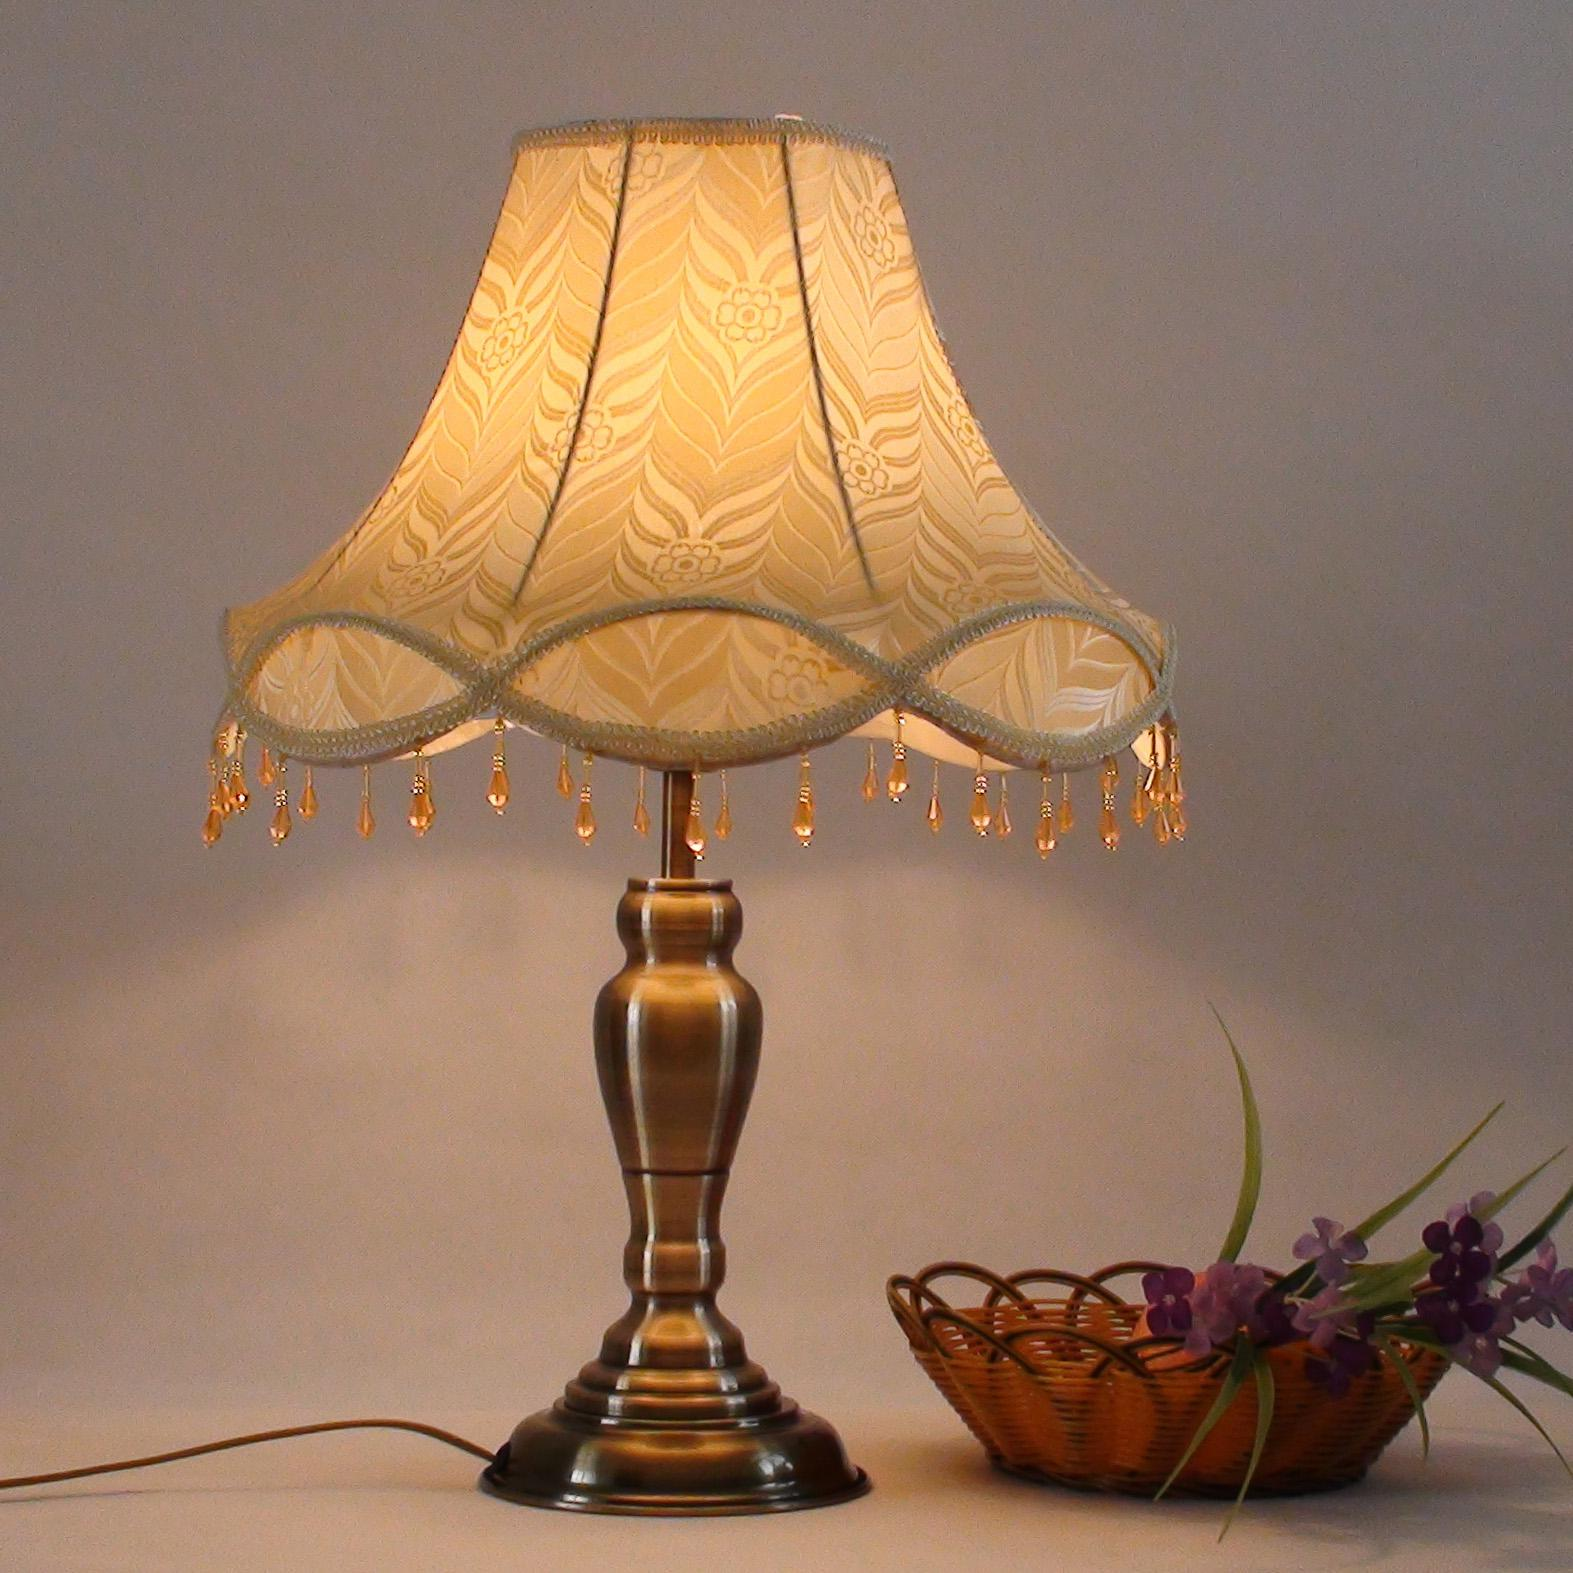 Table Lamps Lighting With 2018 Fashion Antique Table Lamp Ofhead Lighting Guest Room Lamps And From A93b76 6031 Dhgatecom